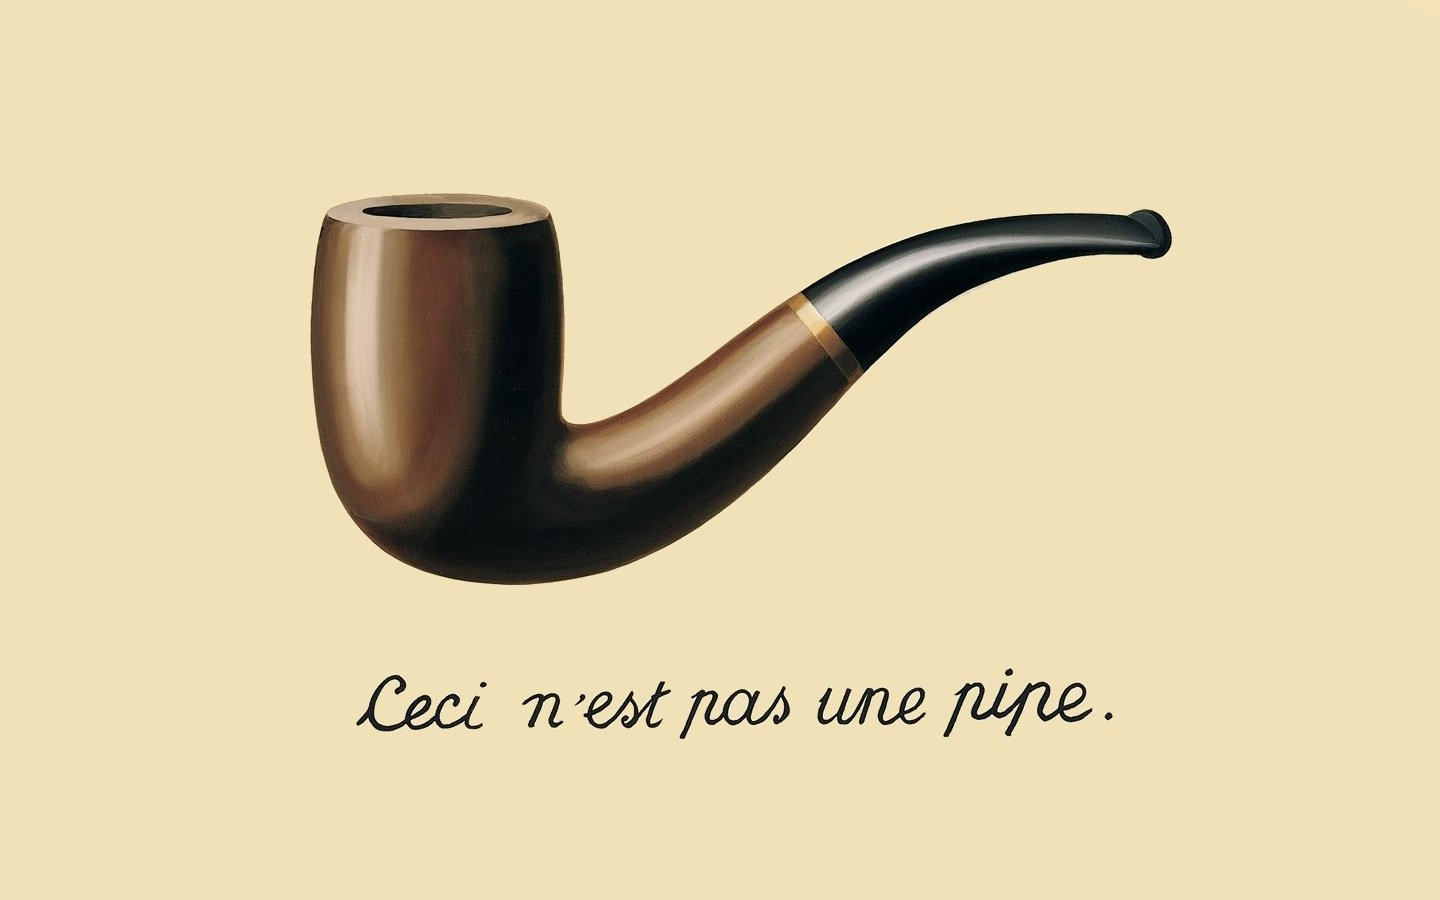 Rene Magritte The Treachery Of Images smoking pipes Rene Magritte